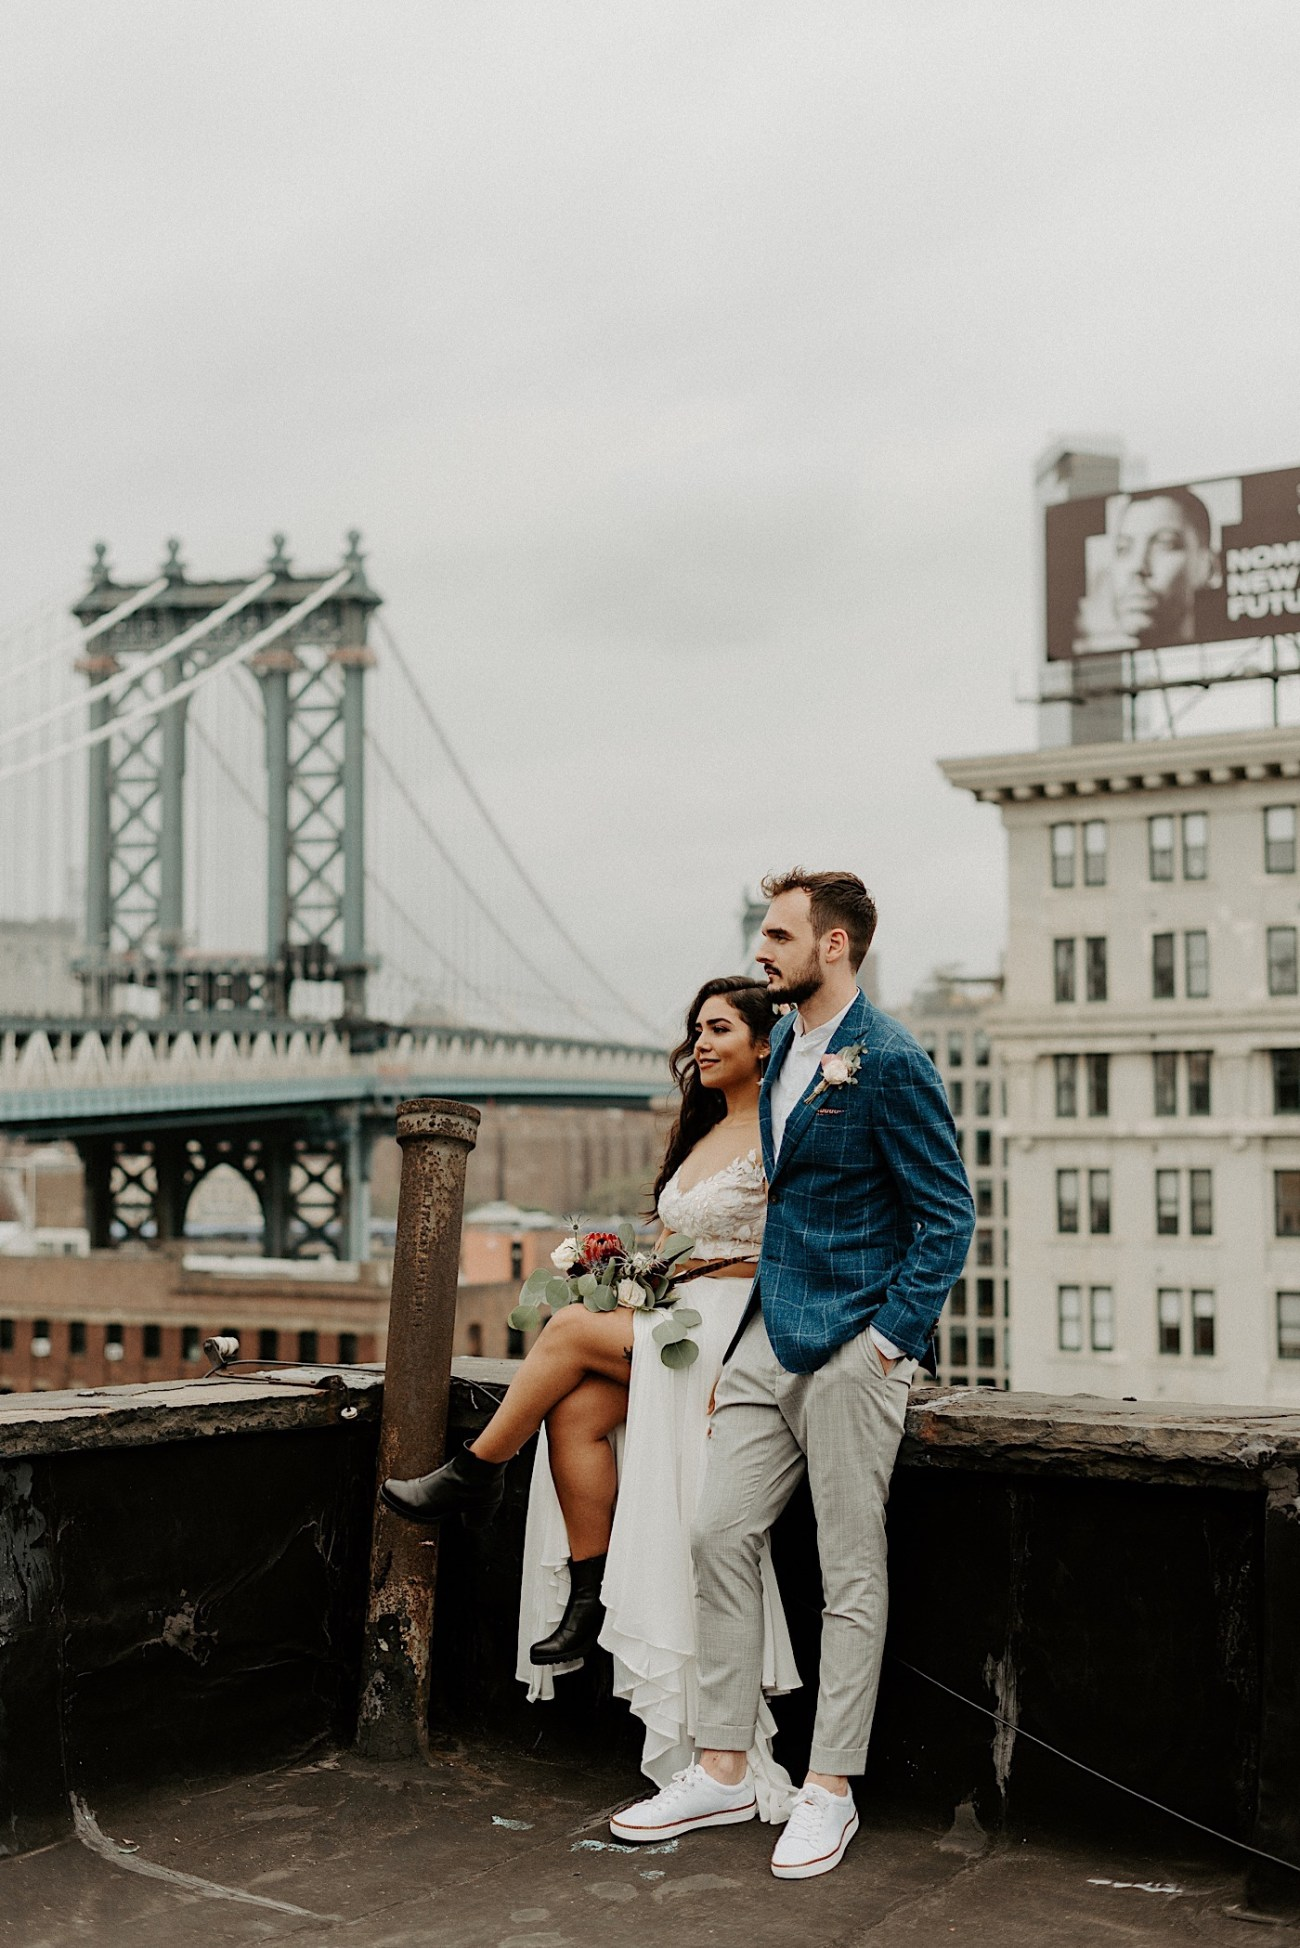 LIC Wedding Greenpoint Wedding LIC Elopement New York Wedding Photographer 082